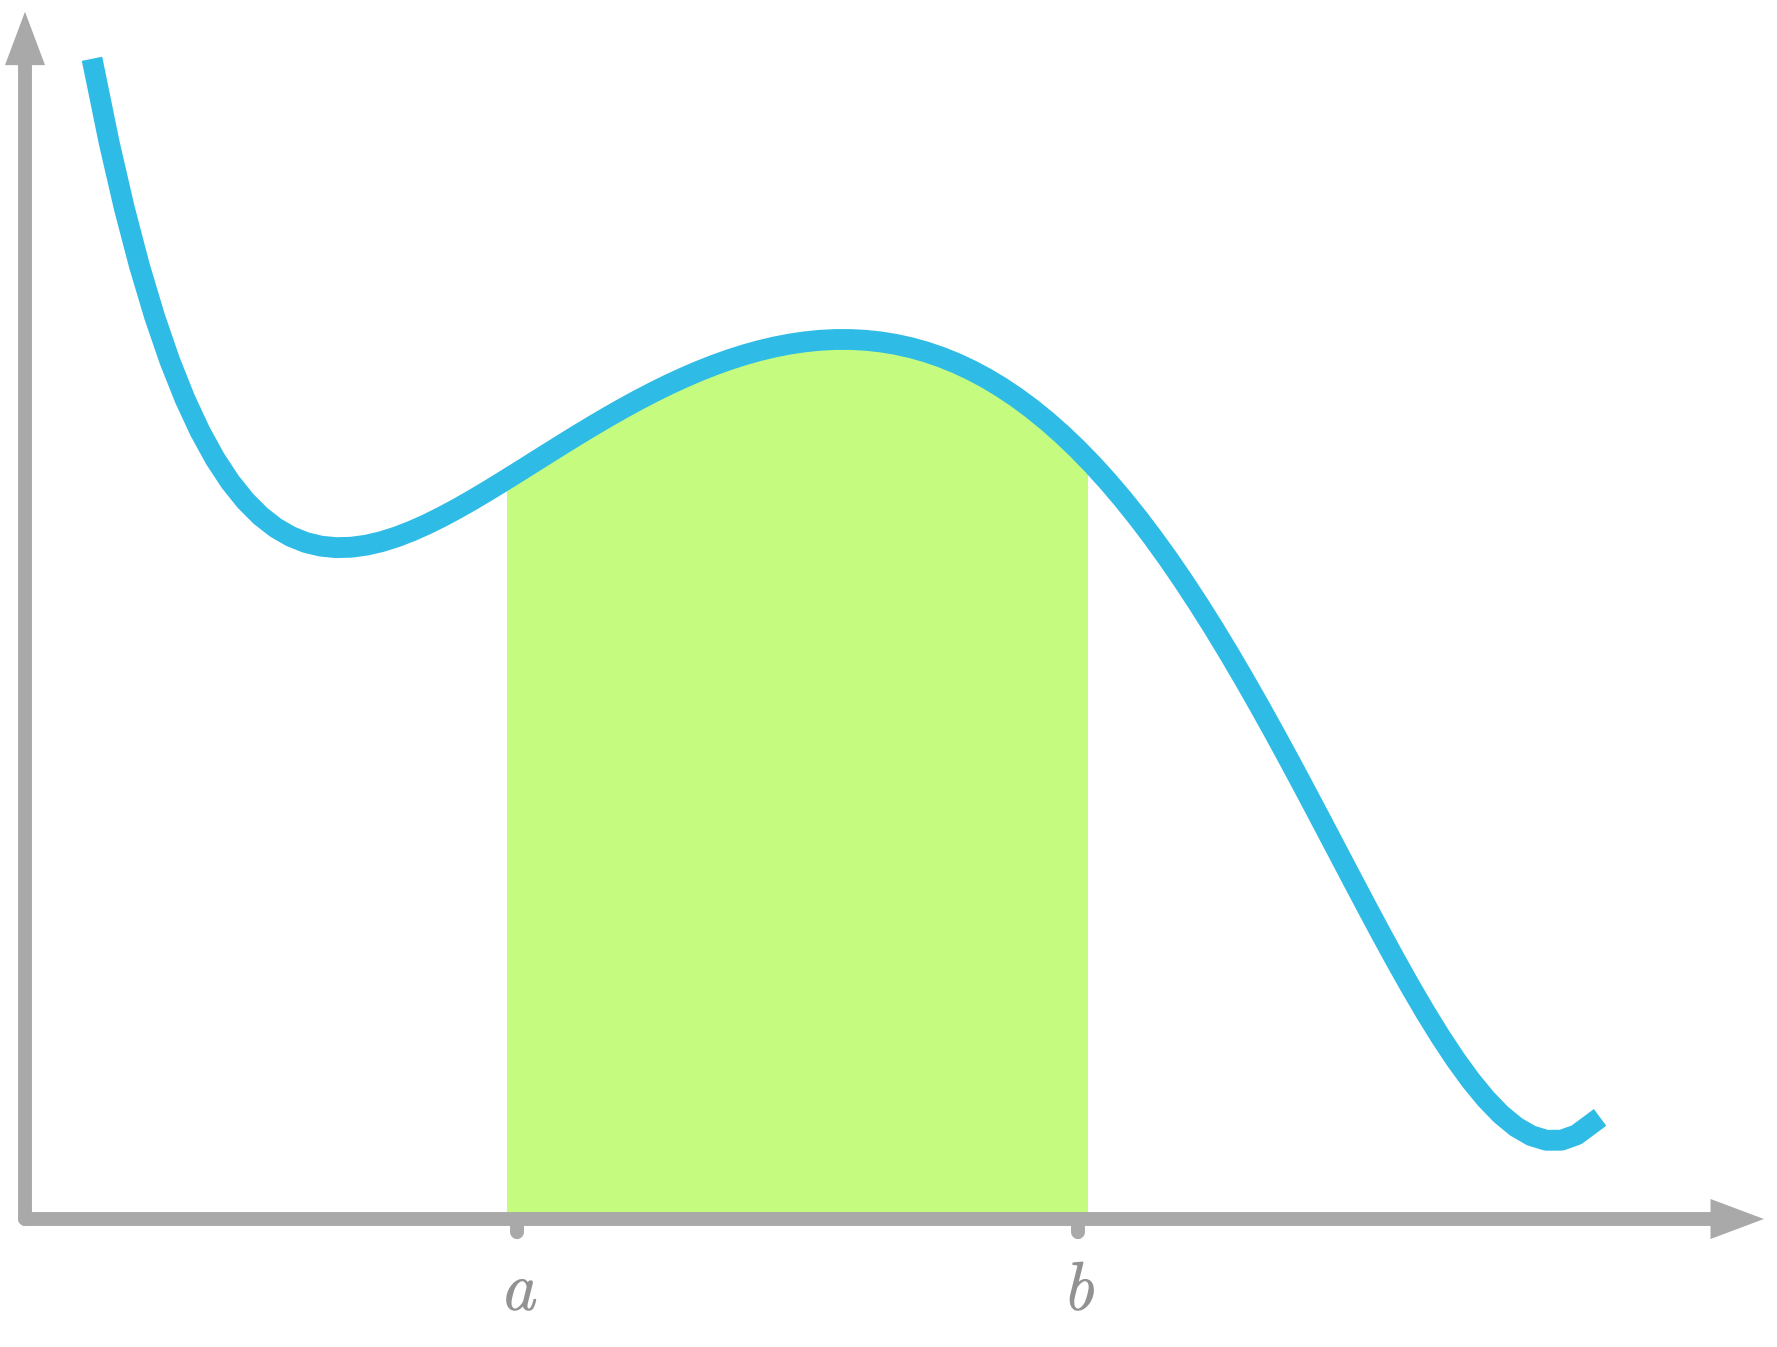 Figure 13: Area under the curve between $x=a$ and $x=b$.